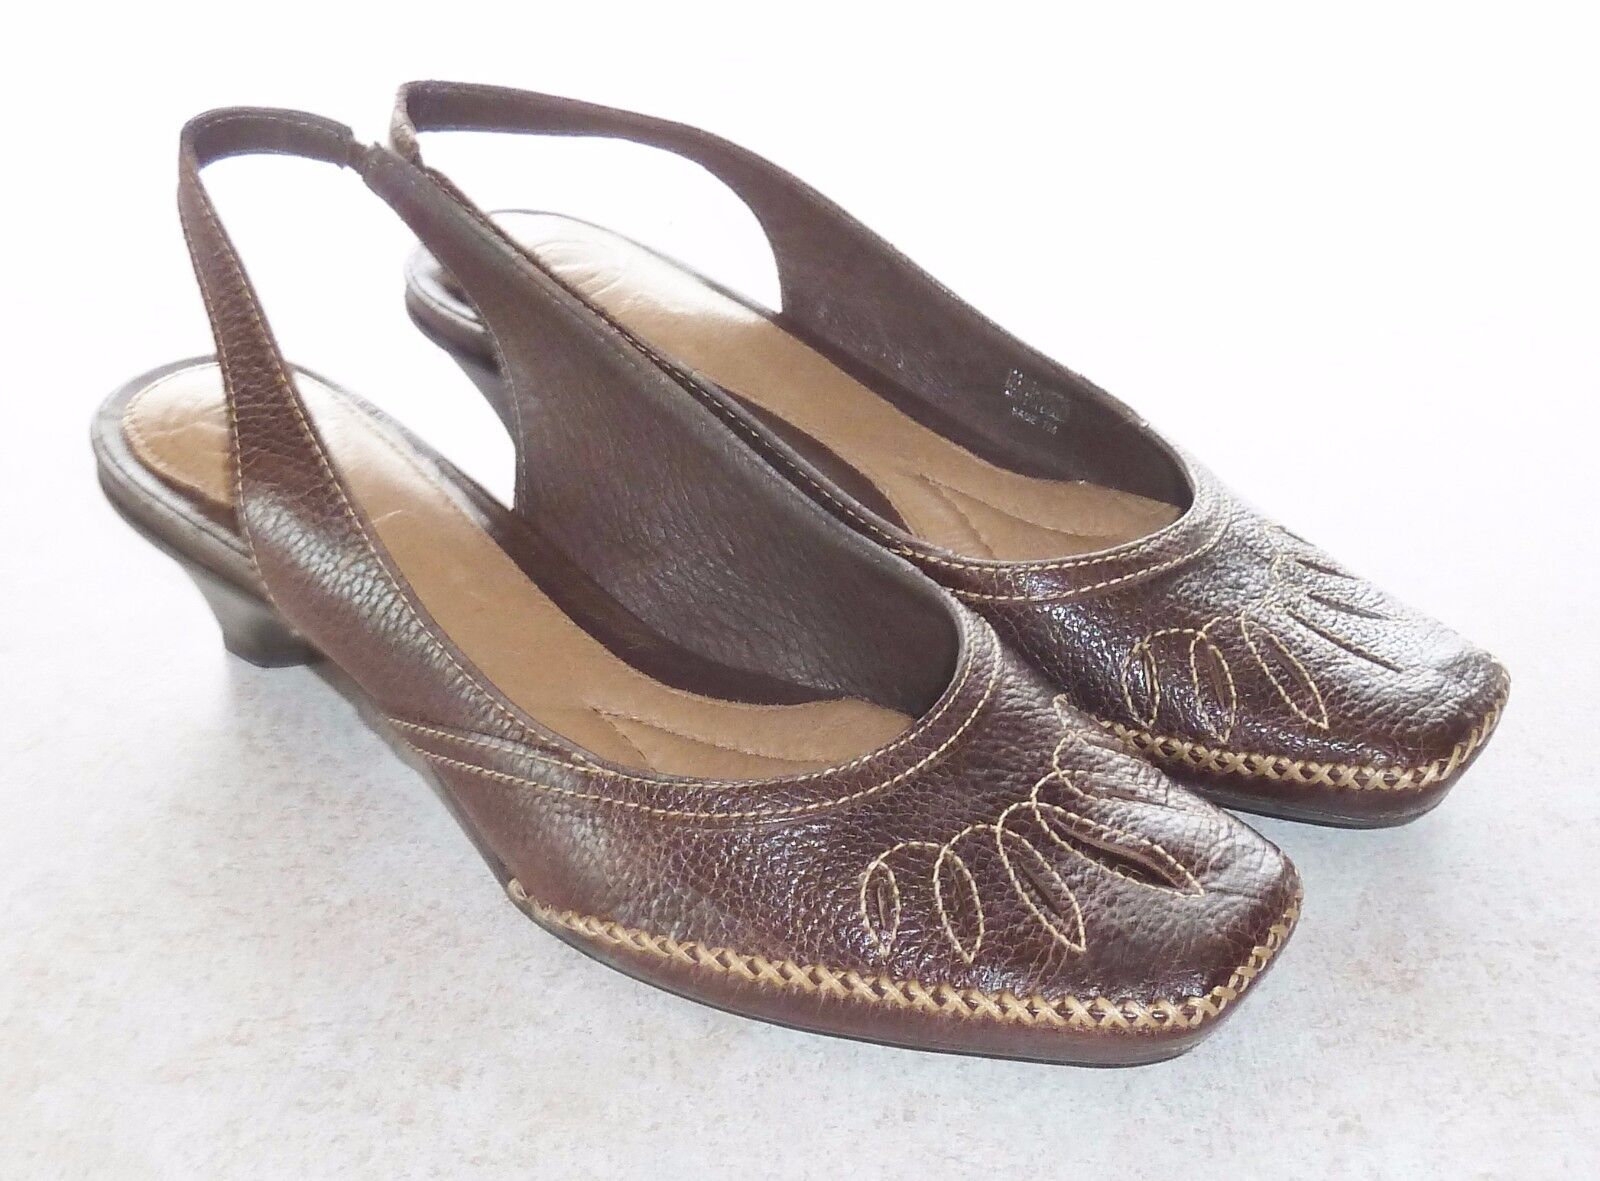 NURTURE *SAGE*  BROWN EMBROIDERED LEATHER LOW-HEEL 7M SLINGBACK PUMPS - LADIES 7M LOW-HEEL e47f90